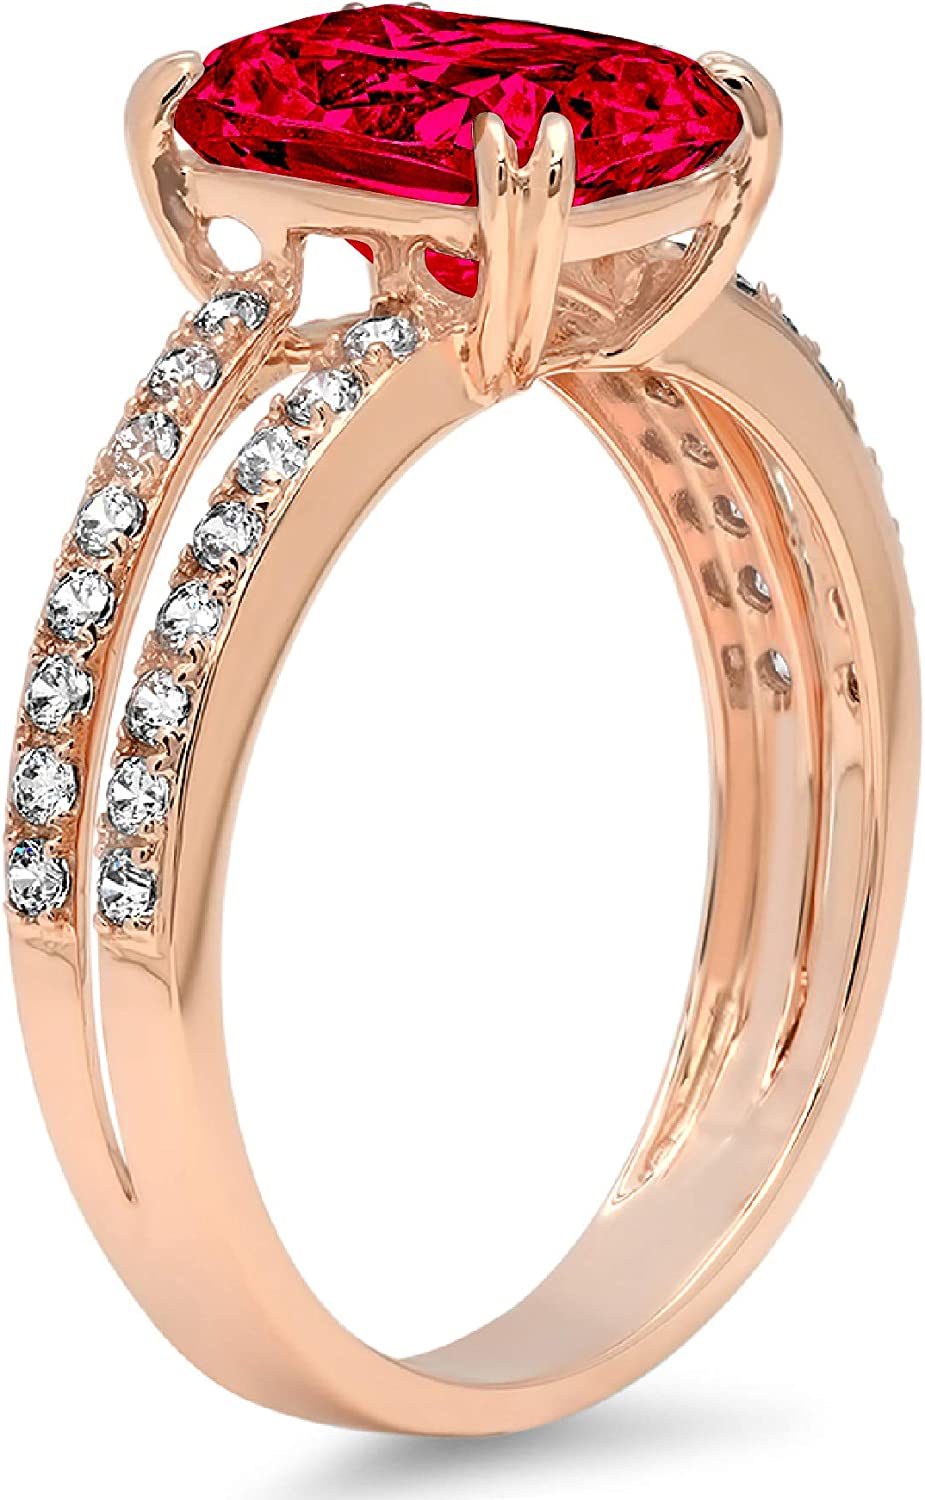 3.44ct Brilliant Cushion Cut Solitaire with accent Flawless Ideal VVS1 Simulated CZ Red Ruby Engagement Promise Statement Anniversary Bridal Wedding Accent Designer Ring 14k Rose Gold